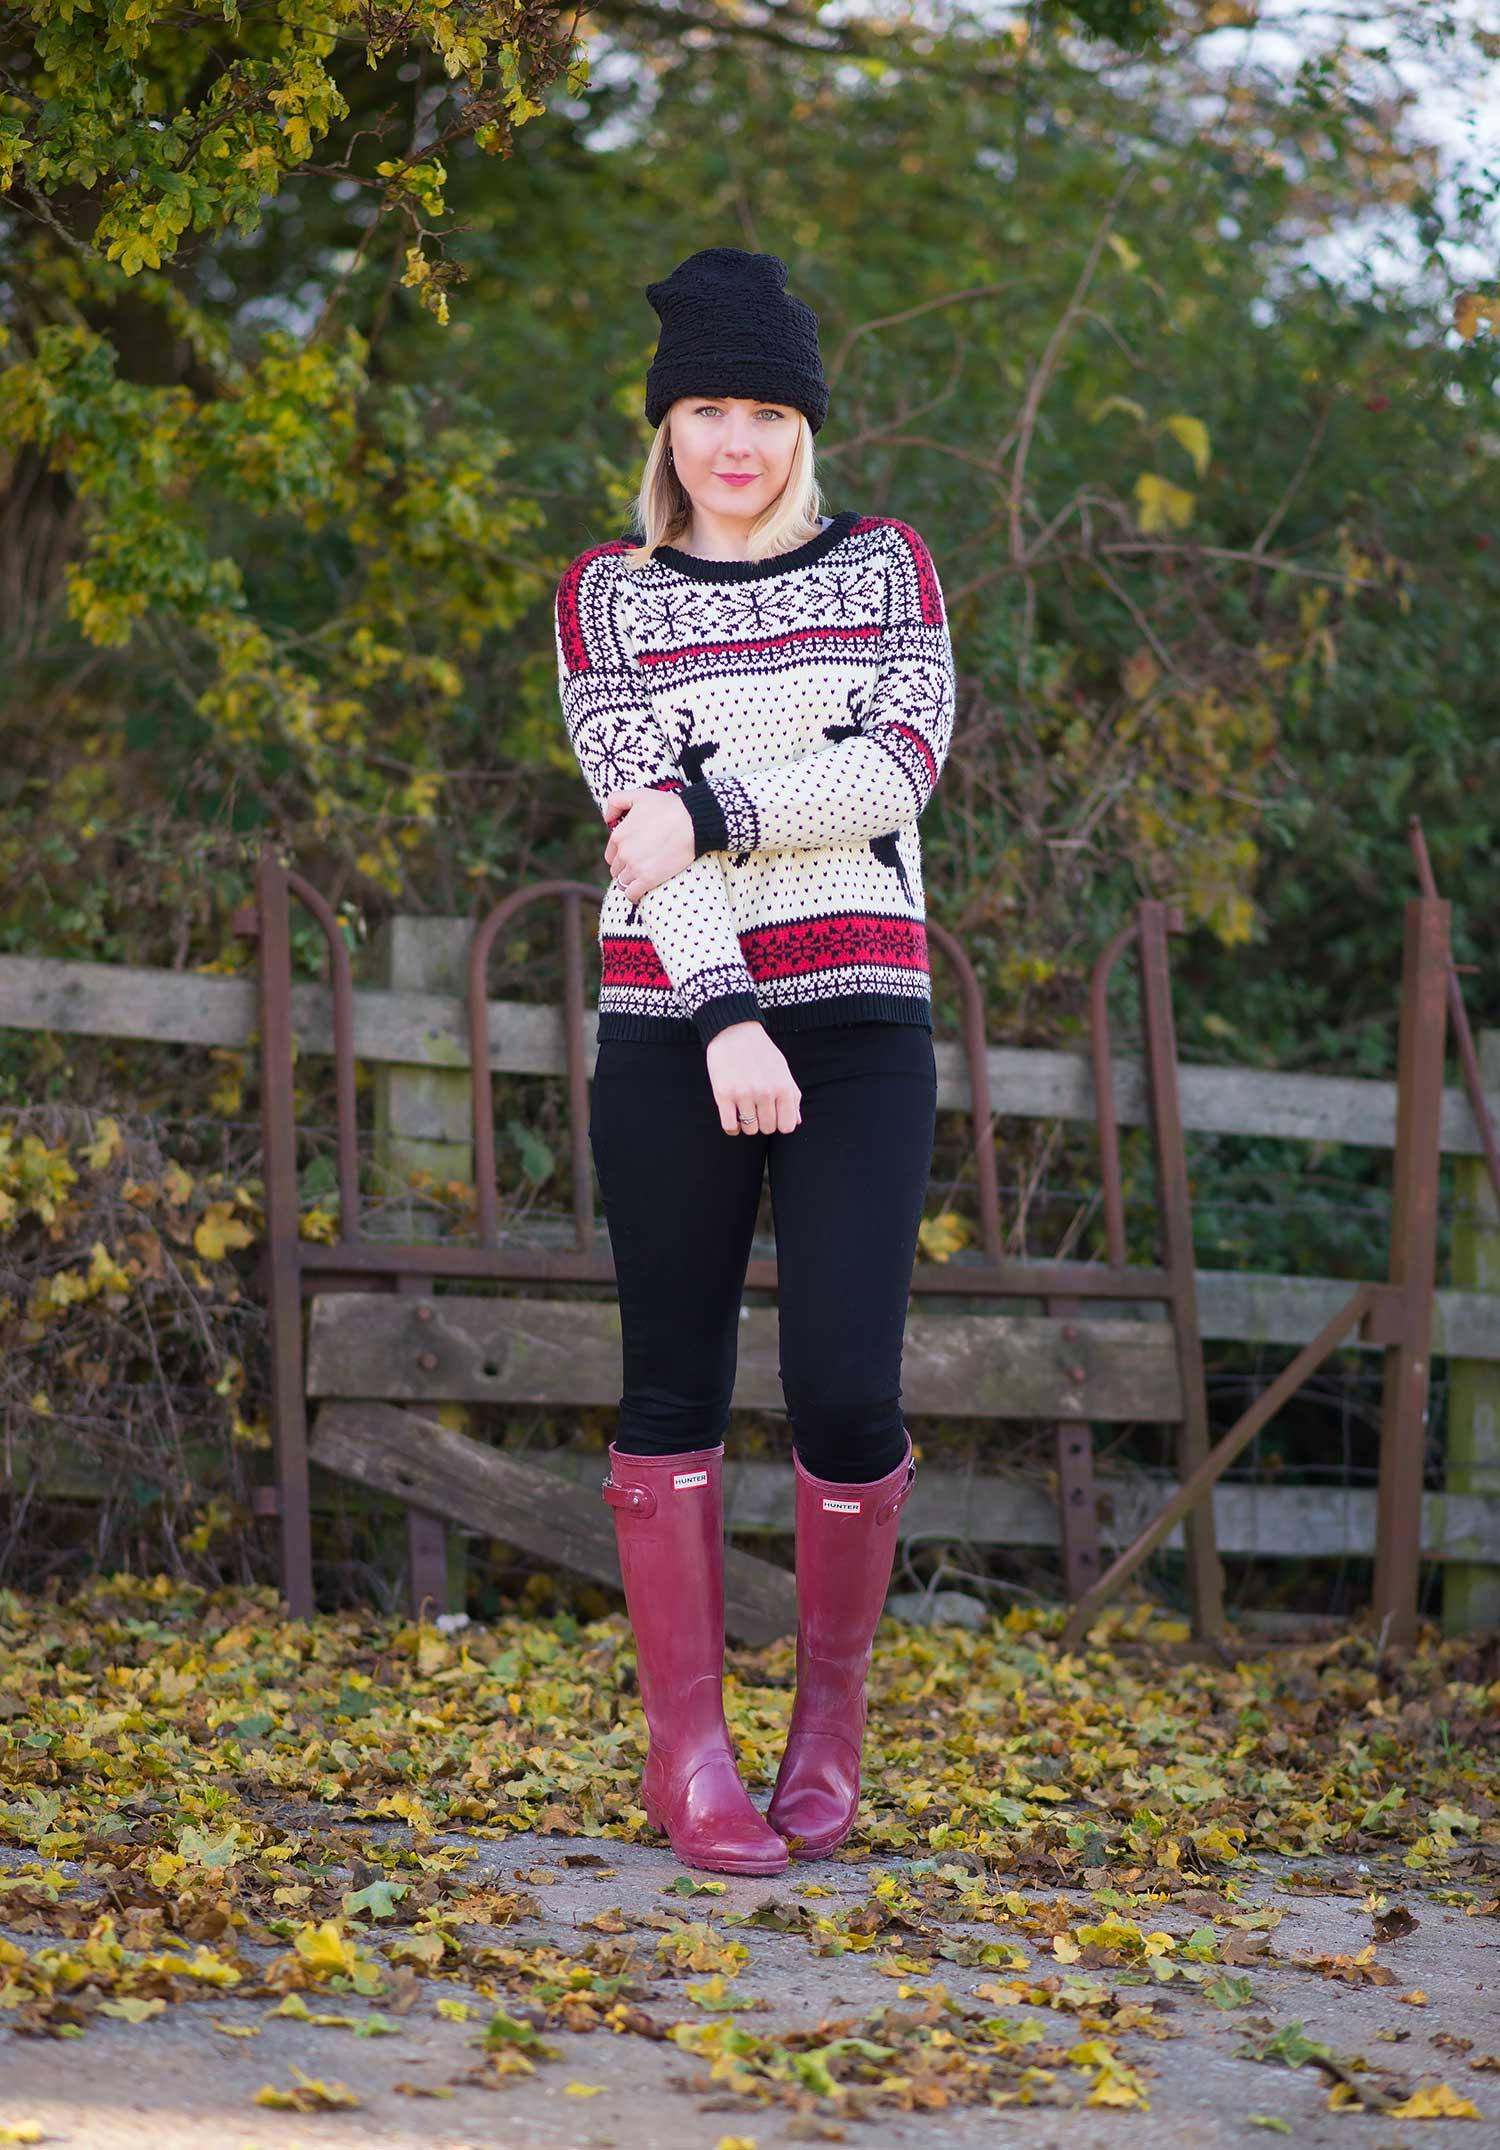 uk-fashion-blogger-christmas-jumper-and-wellies